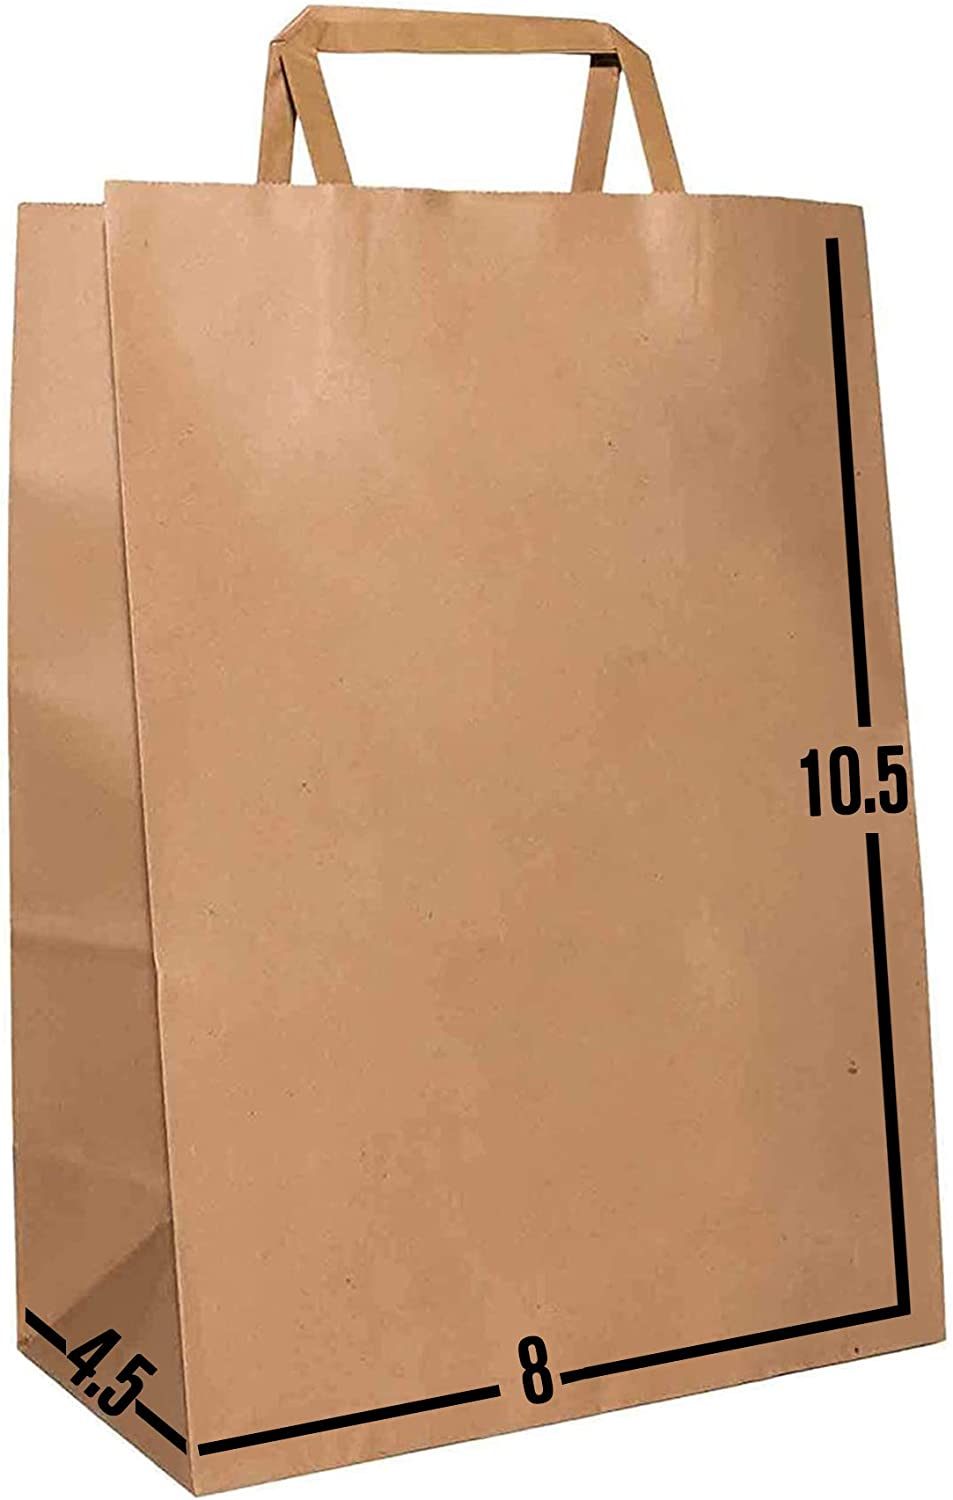 [100 Pcs. 8 X 4.5 X 10.5]- Kraft Paper Gift Bags Bulk with Flat Handles. Ideal for Shopping, Packaging, Retail, Party, Craft, Gifts, Wedding, Recycled, Business, Goody and Merchandise Bag (Brown)